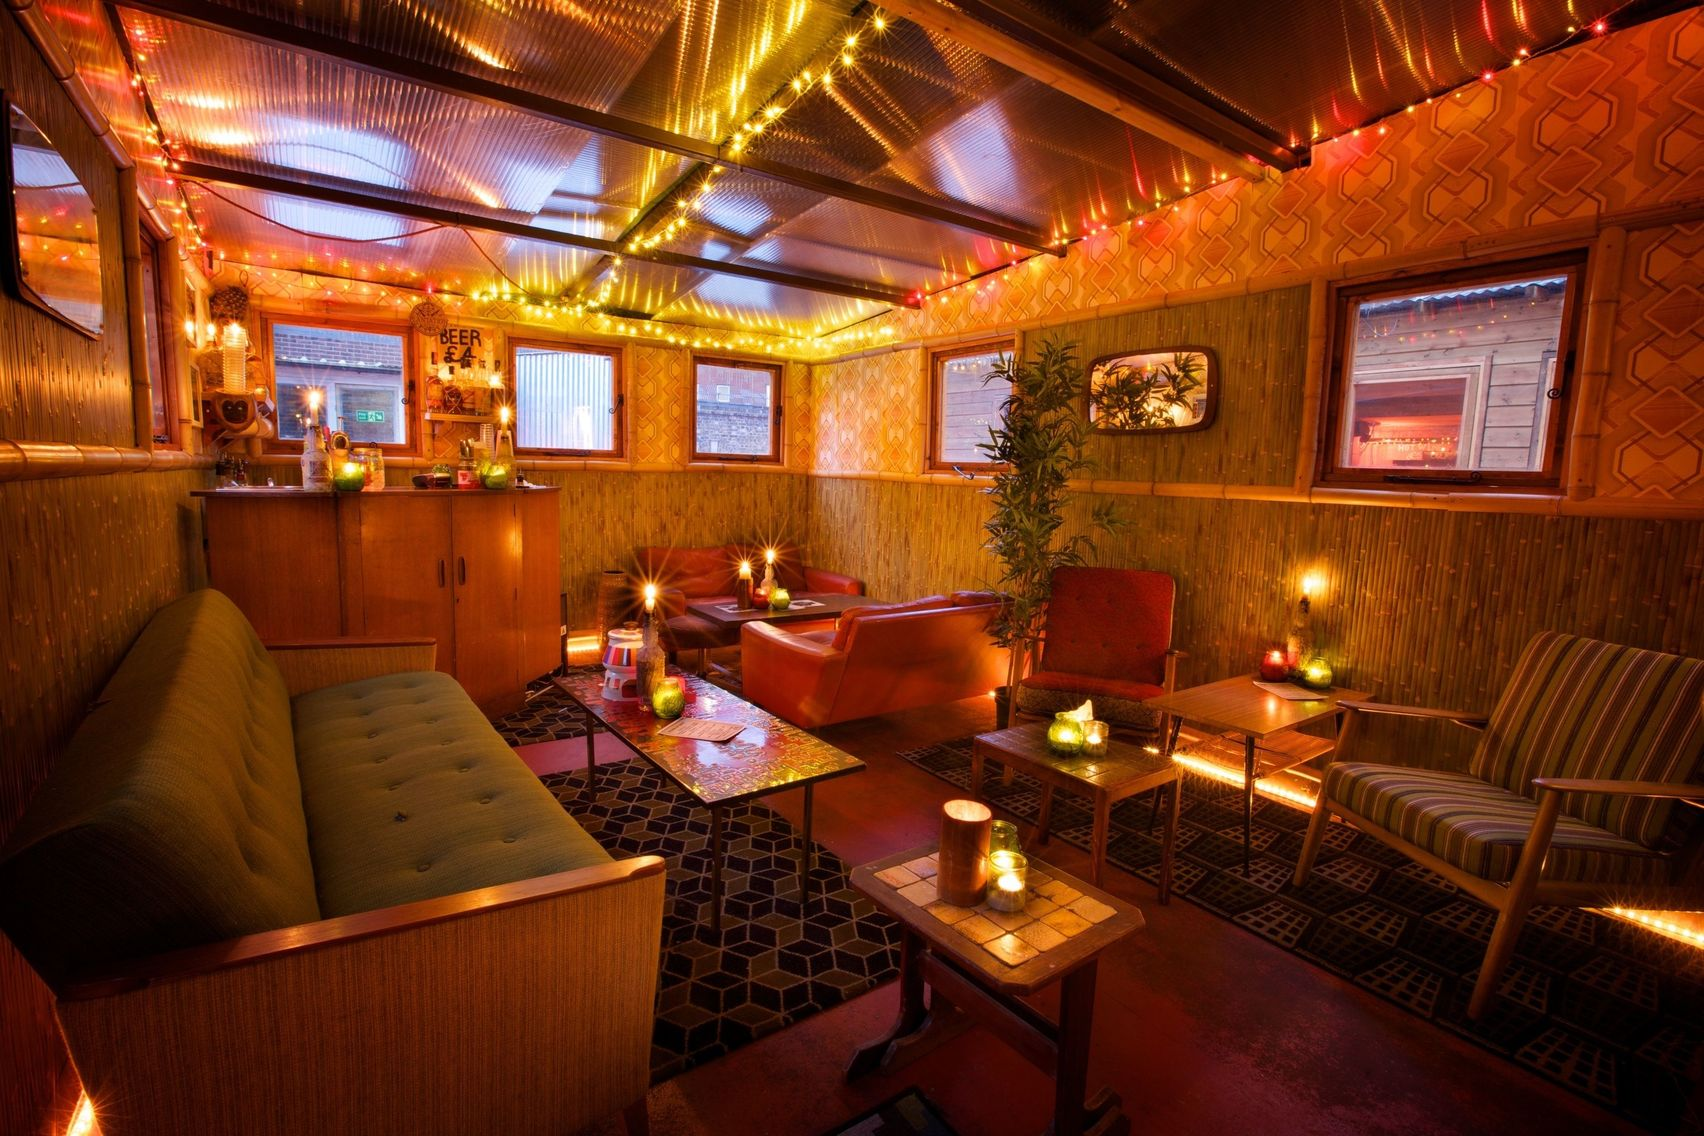 Christmas drinks venue with lots of seats and sofas with candles on the tables and orange and yellow fairy lights on the ceiling